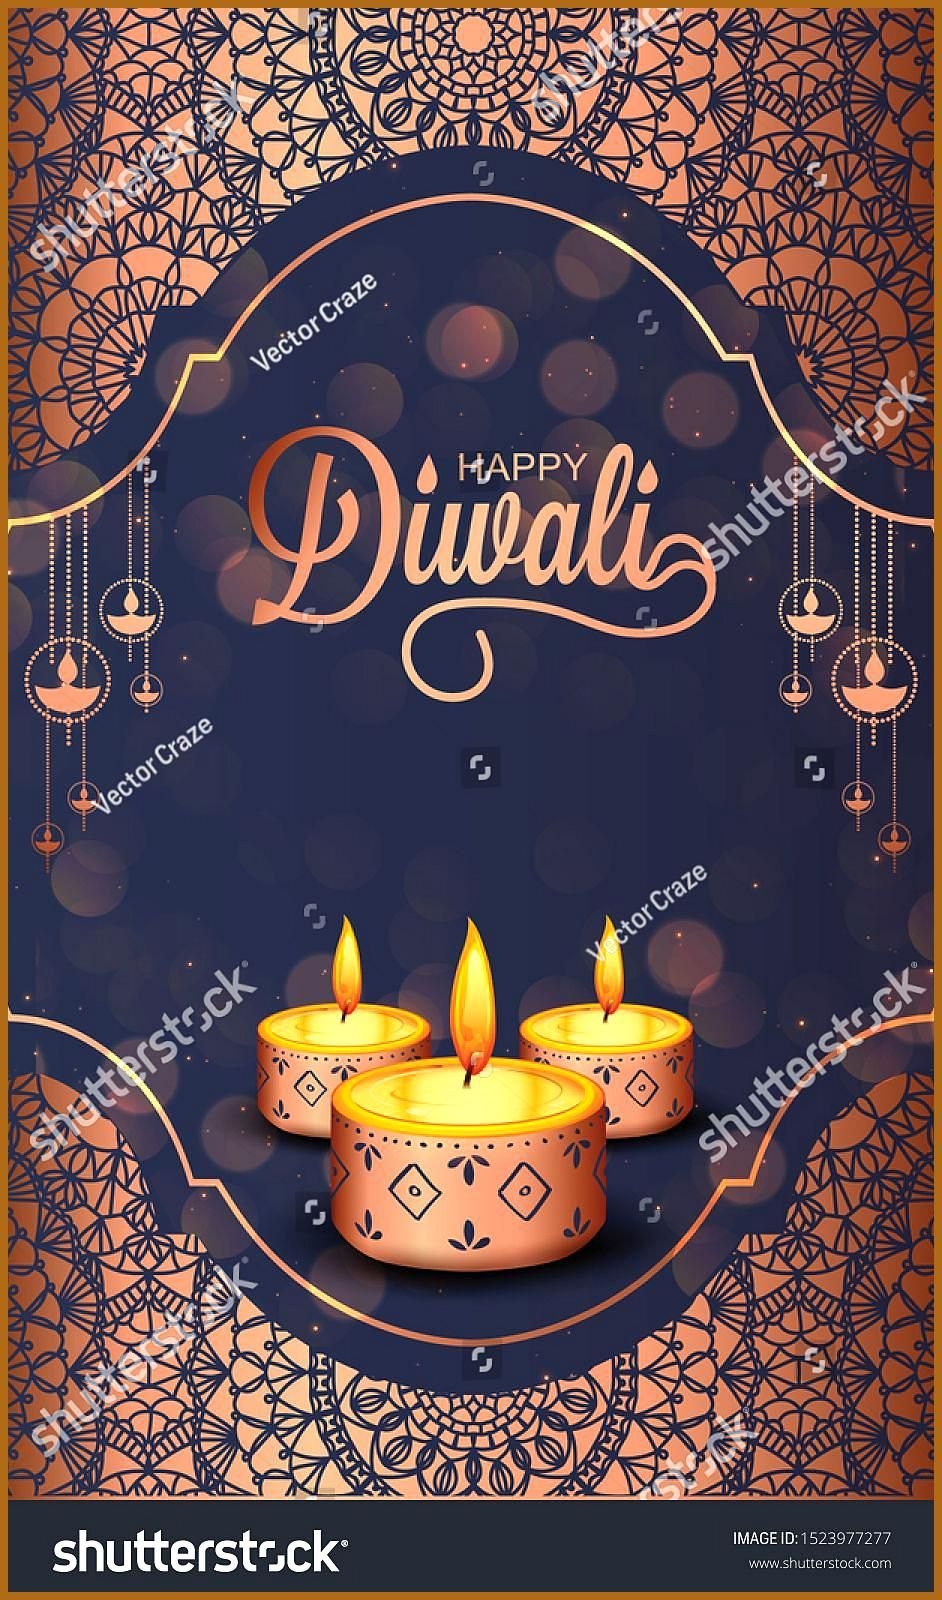 Diwali Holiday background for light festival of India with message Happy Diwali Vector Ad SPONSORED backgroundlightDiwaliHoliday Diwali Holiday background for light festi...